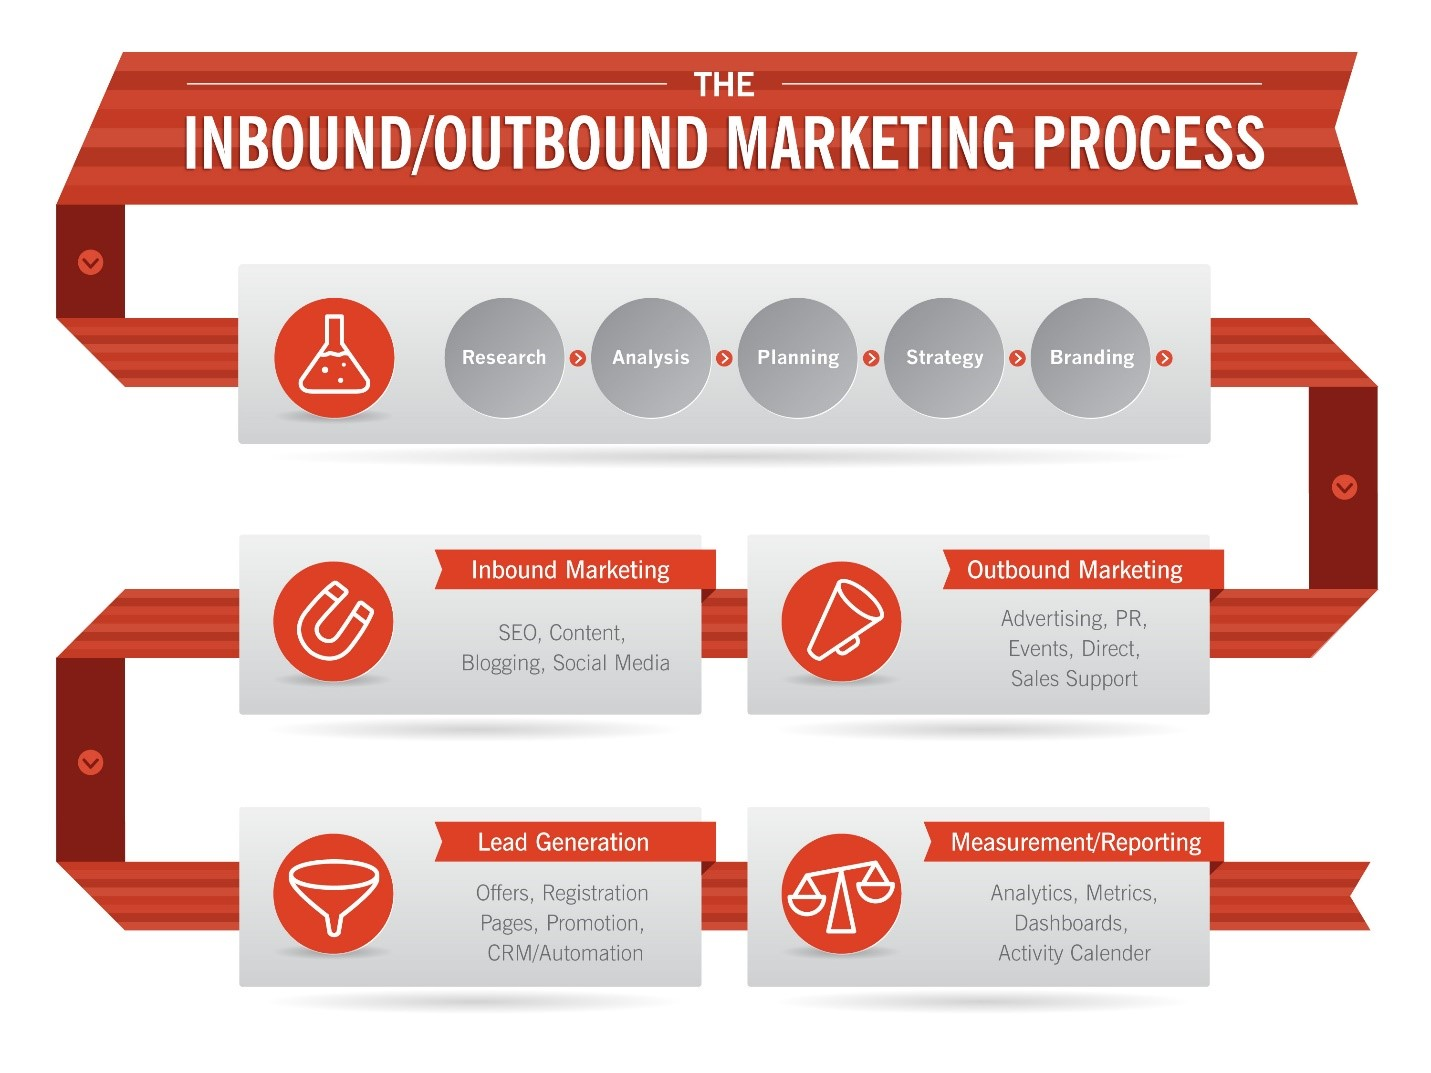 inbound-outbound_marketing_process.jpg